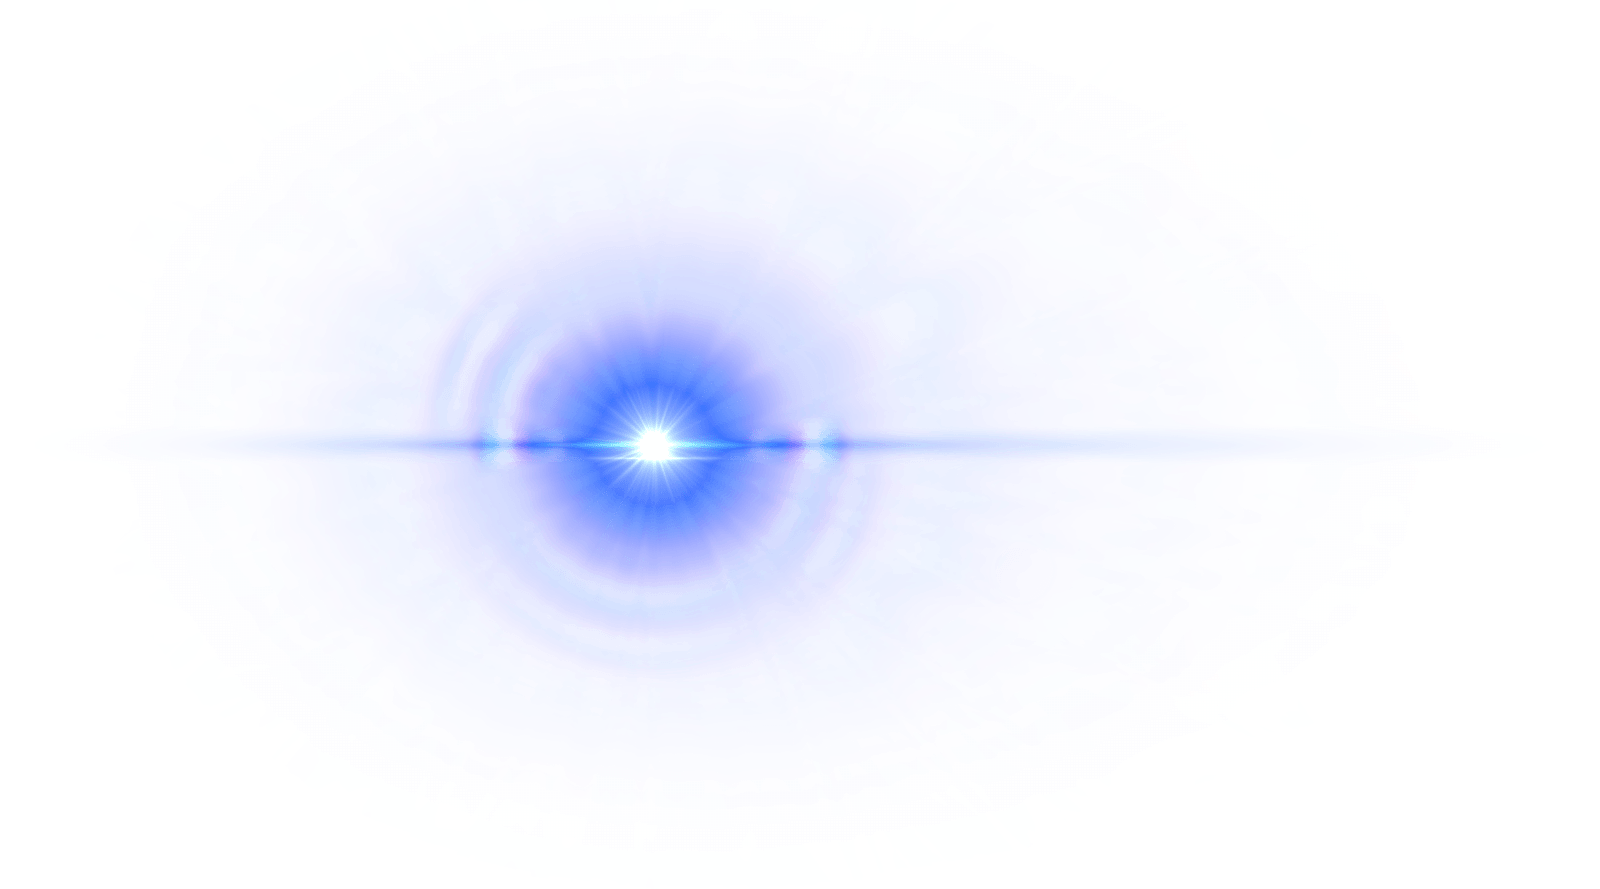 Lens flare eyes png. Collection of free flared